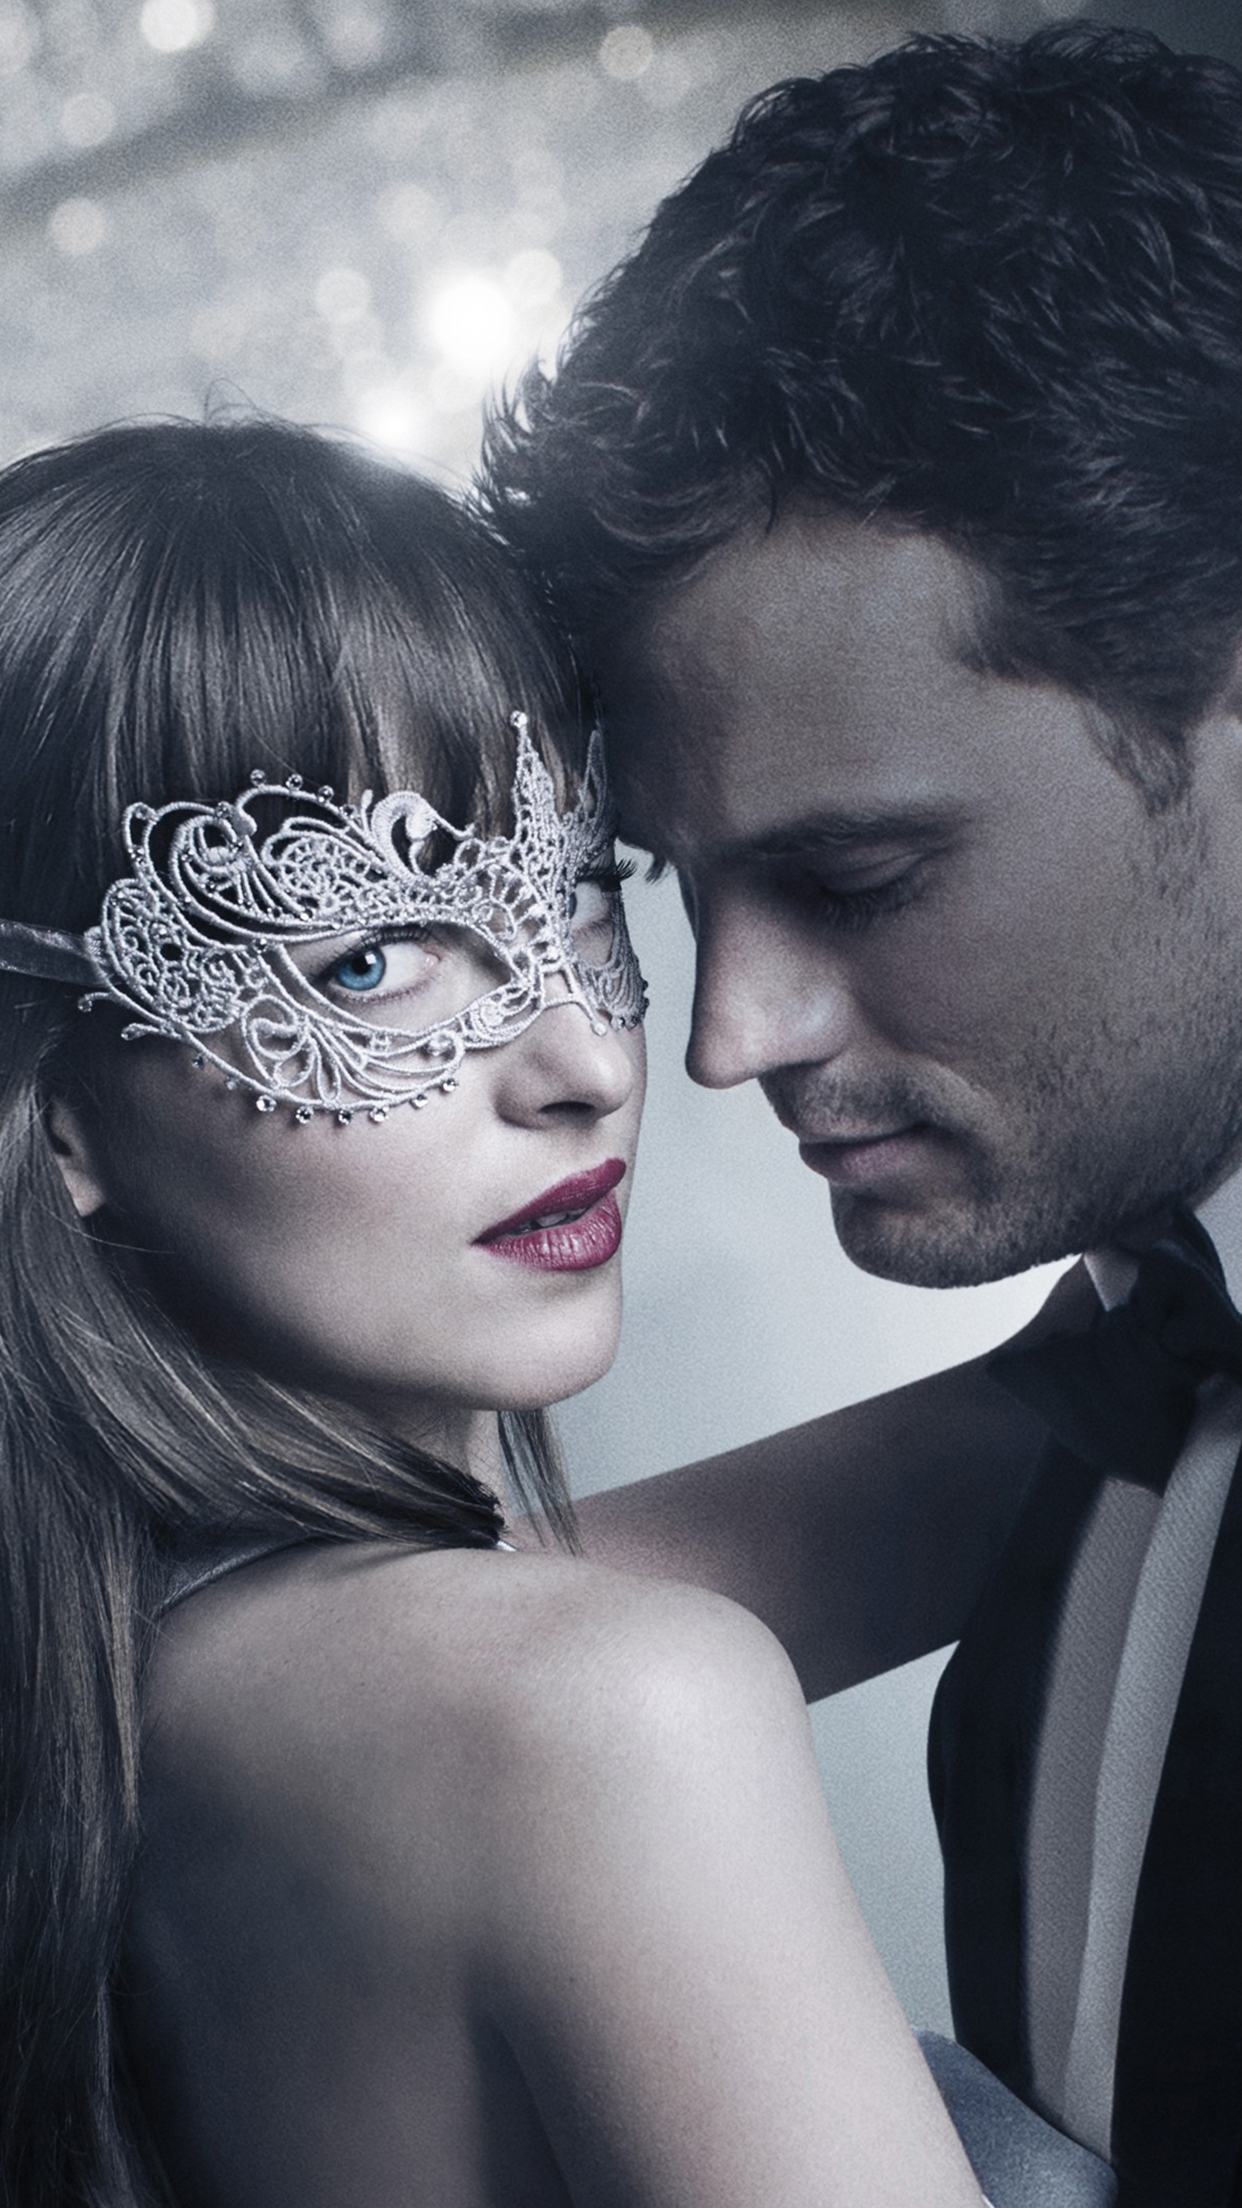 Fifty Shades Darker Christian Ana 3Wallpapers iPhone Parallax Les 3Wallpapers iPhone du jour (14/02/2017)